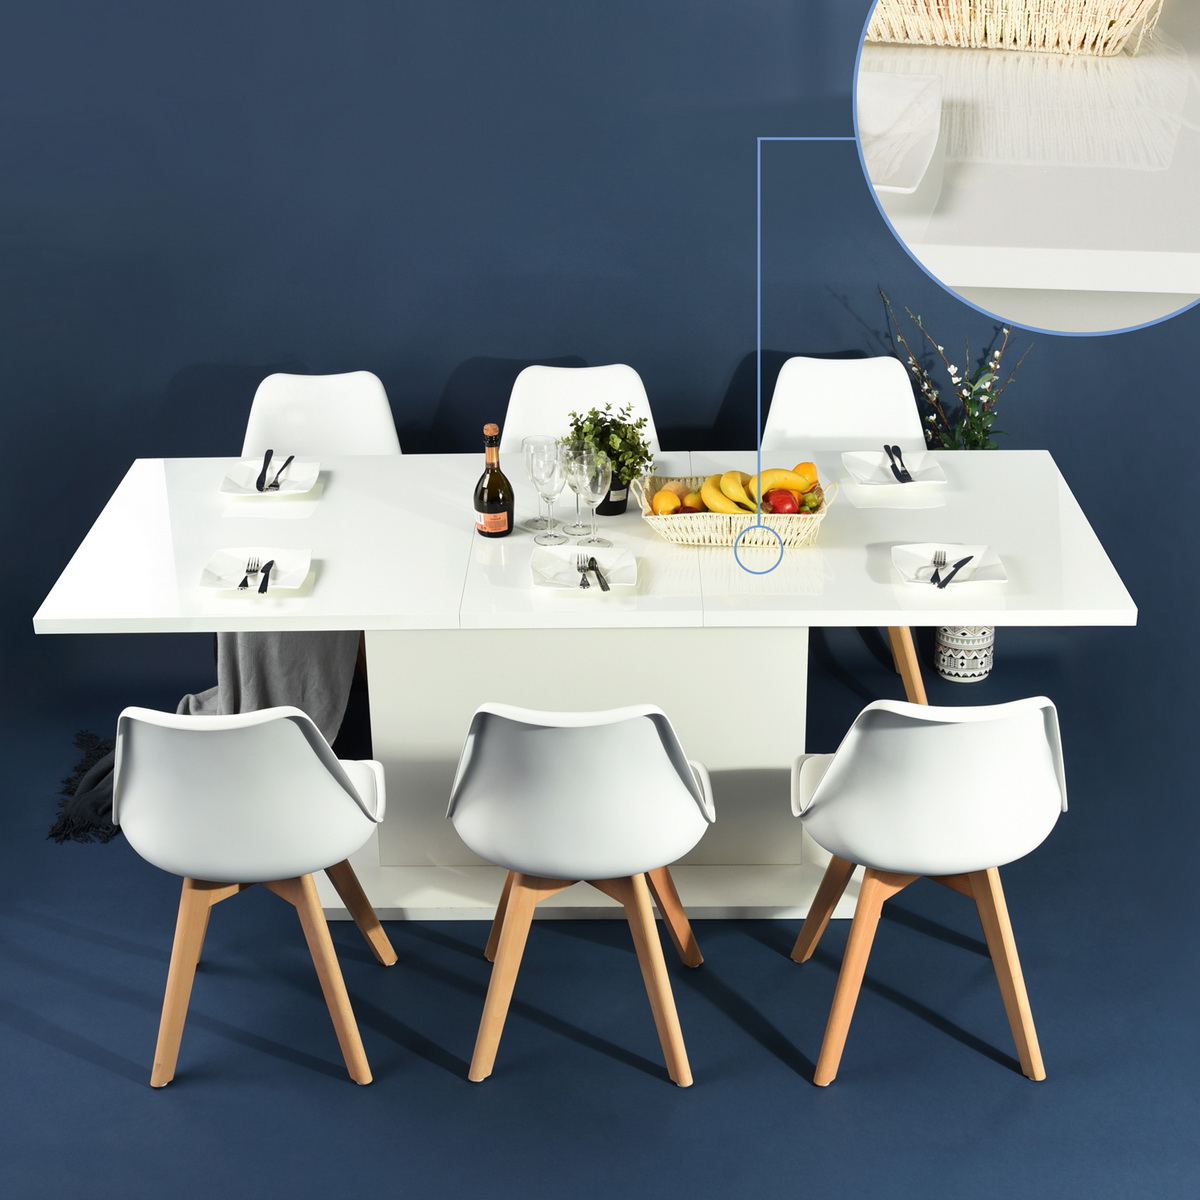 Popular 8 Seater Wood Contemporary Dining Tables With Extension Leaf Pertaining To Details About Modern Kitchen Dining Table Extendable Wooden 4 8 Seaters  High Gloss White Wood (View 17 of 25)